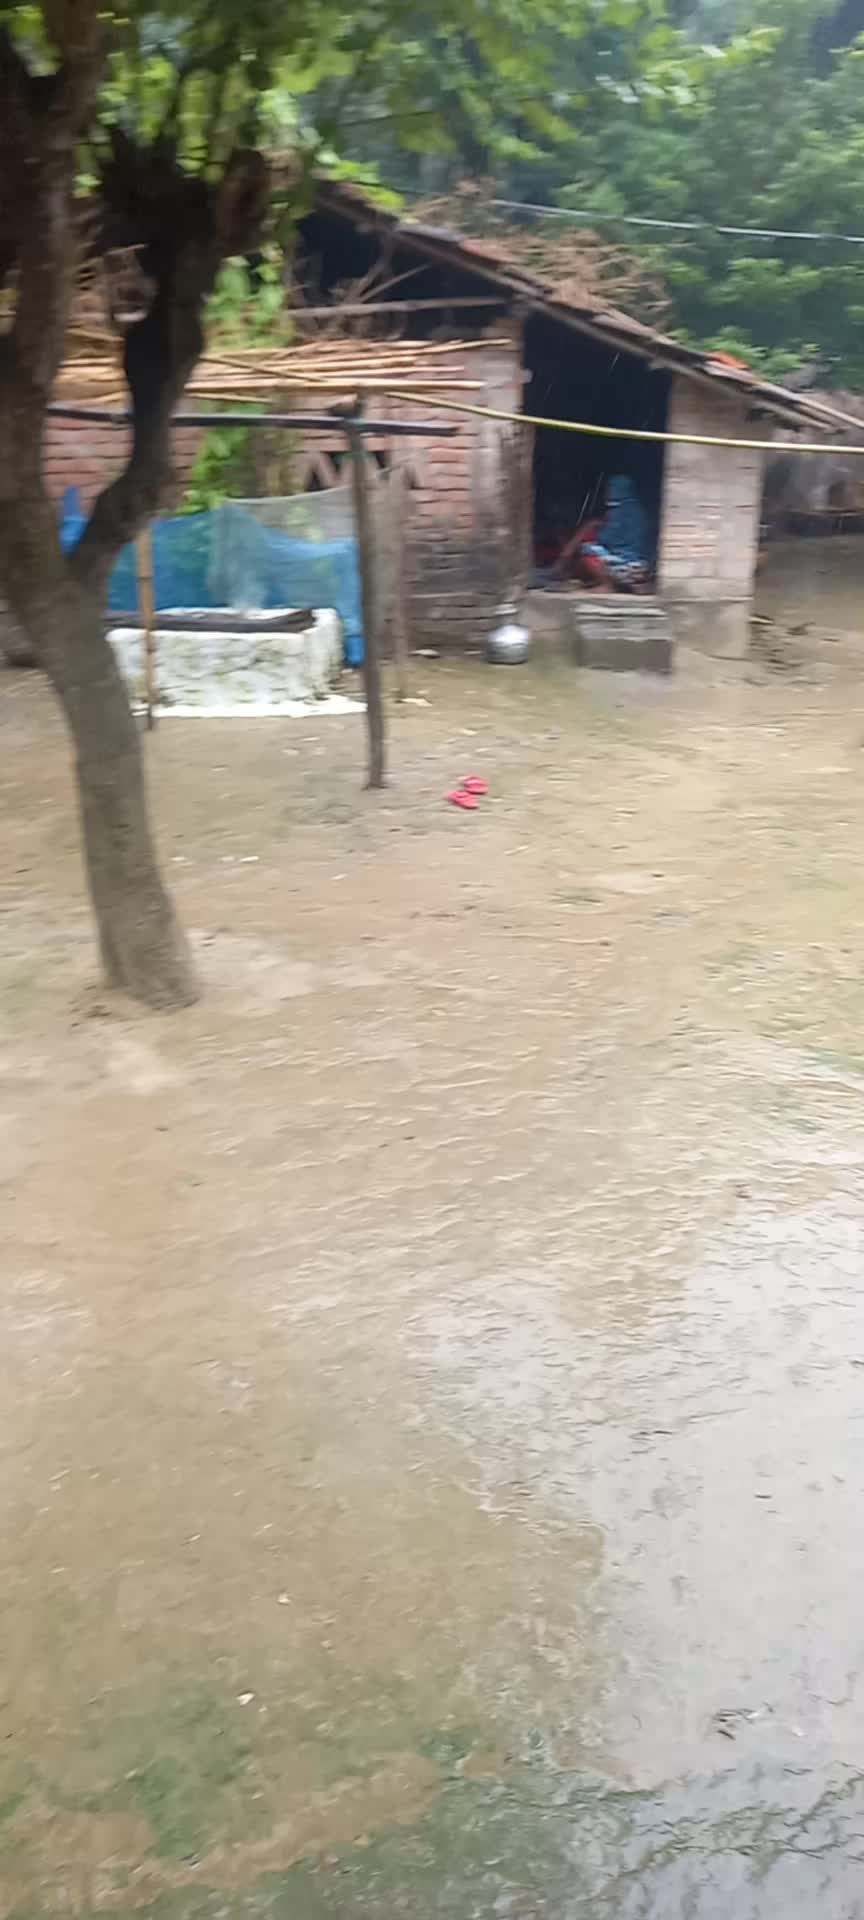 There is a lot of rain in the countryside.